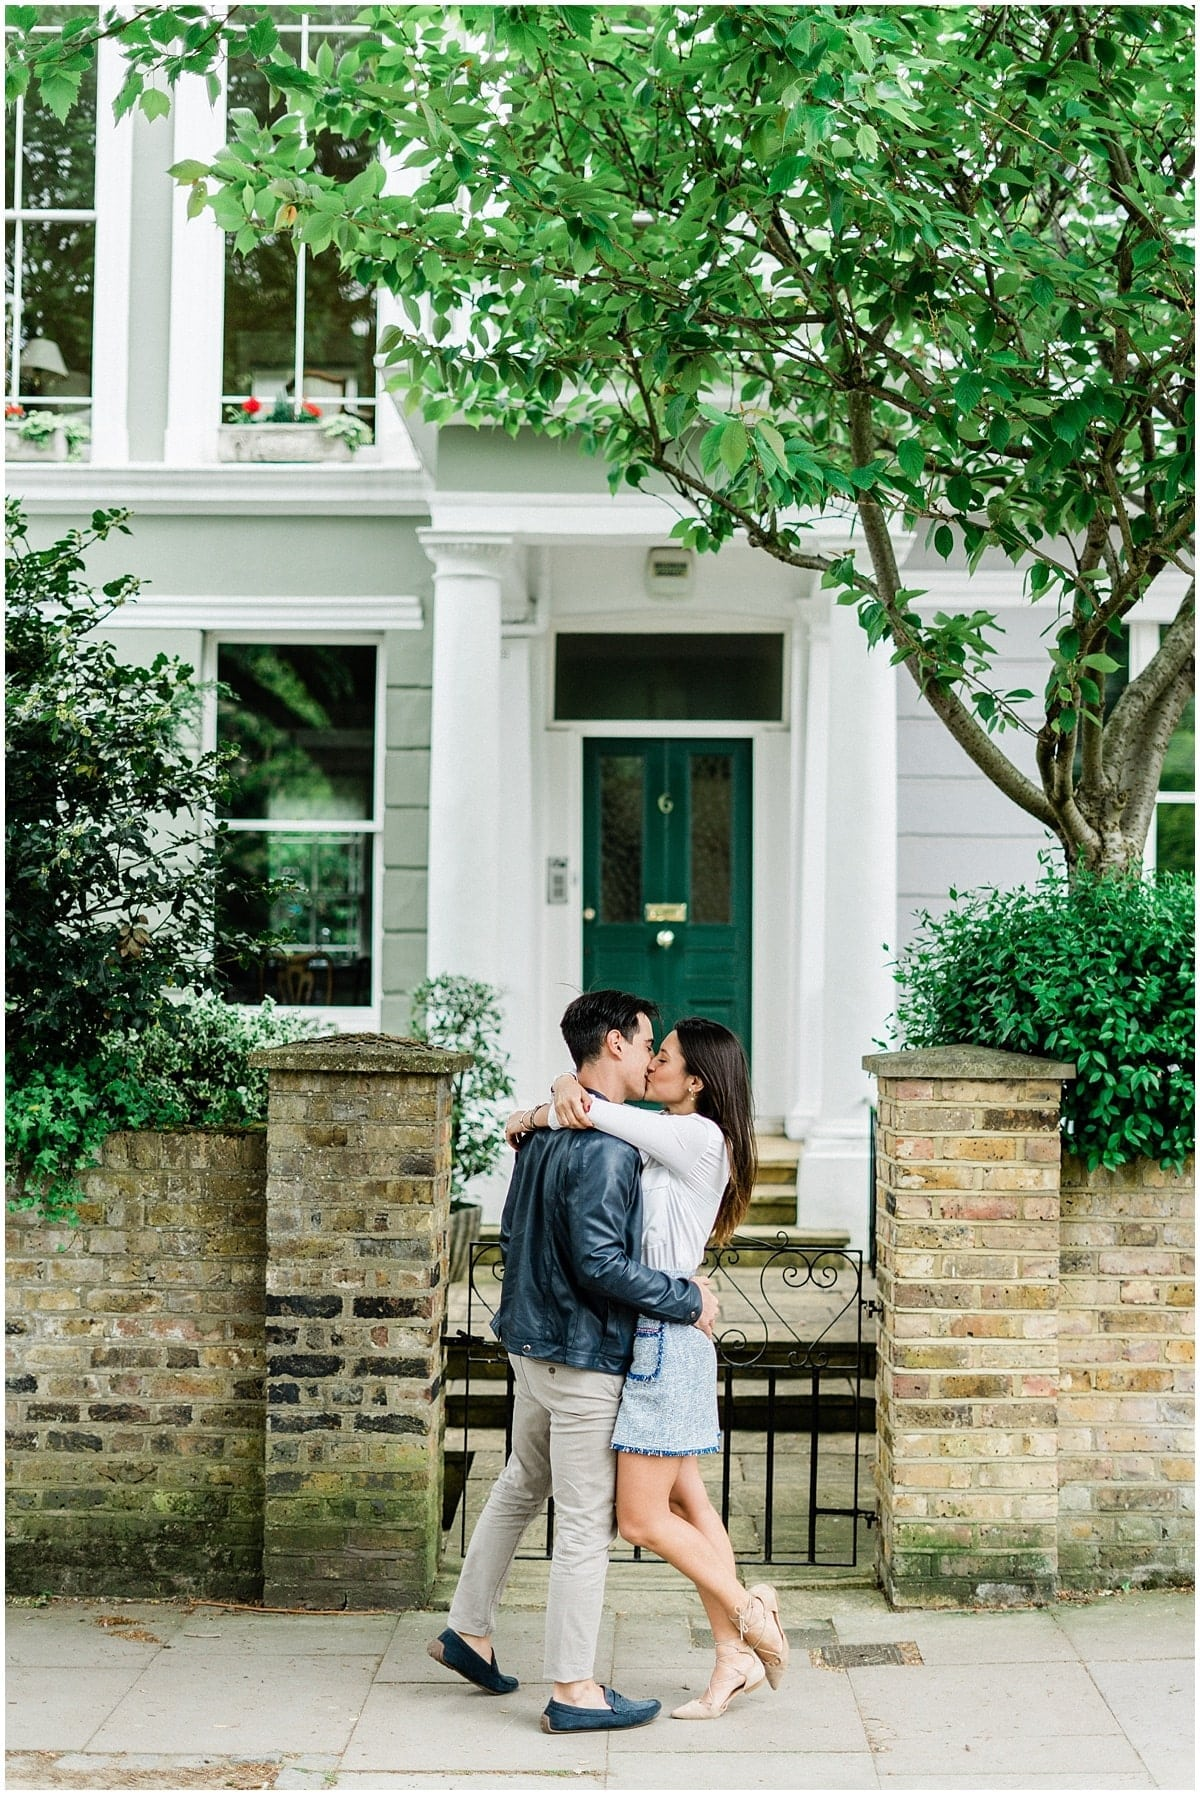 destination engagement photographer london primerose hill